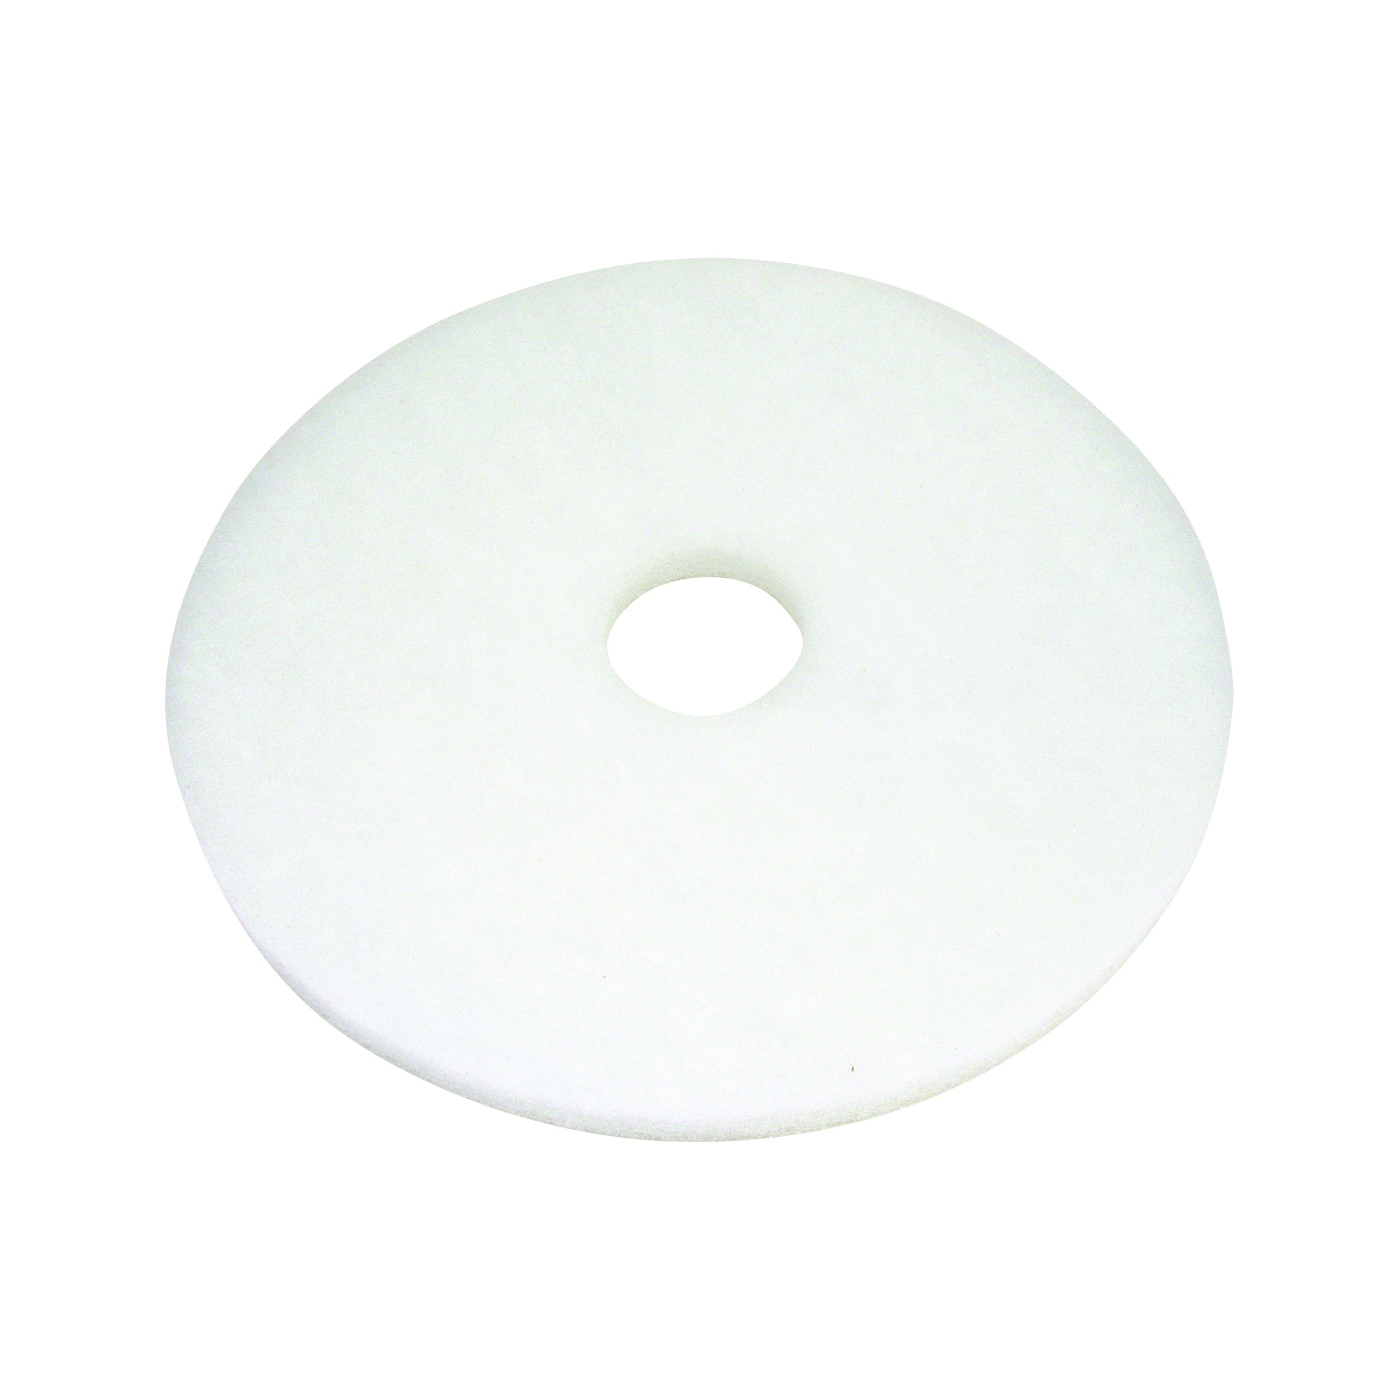 Picture of NORTH AMERICAN PAPER 420514 Polishing Pad, White